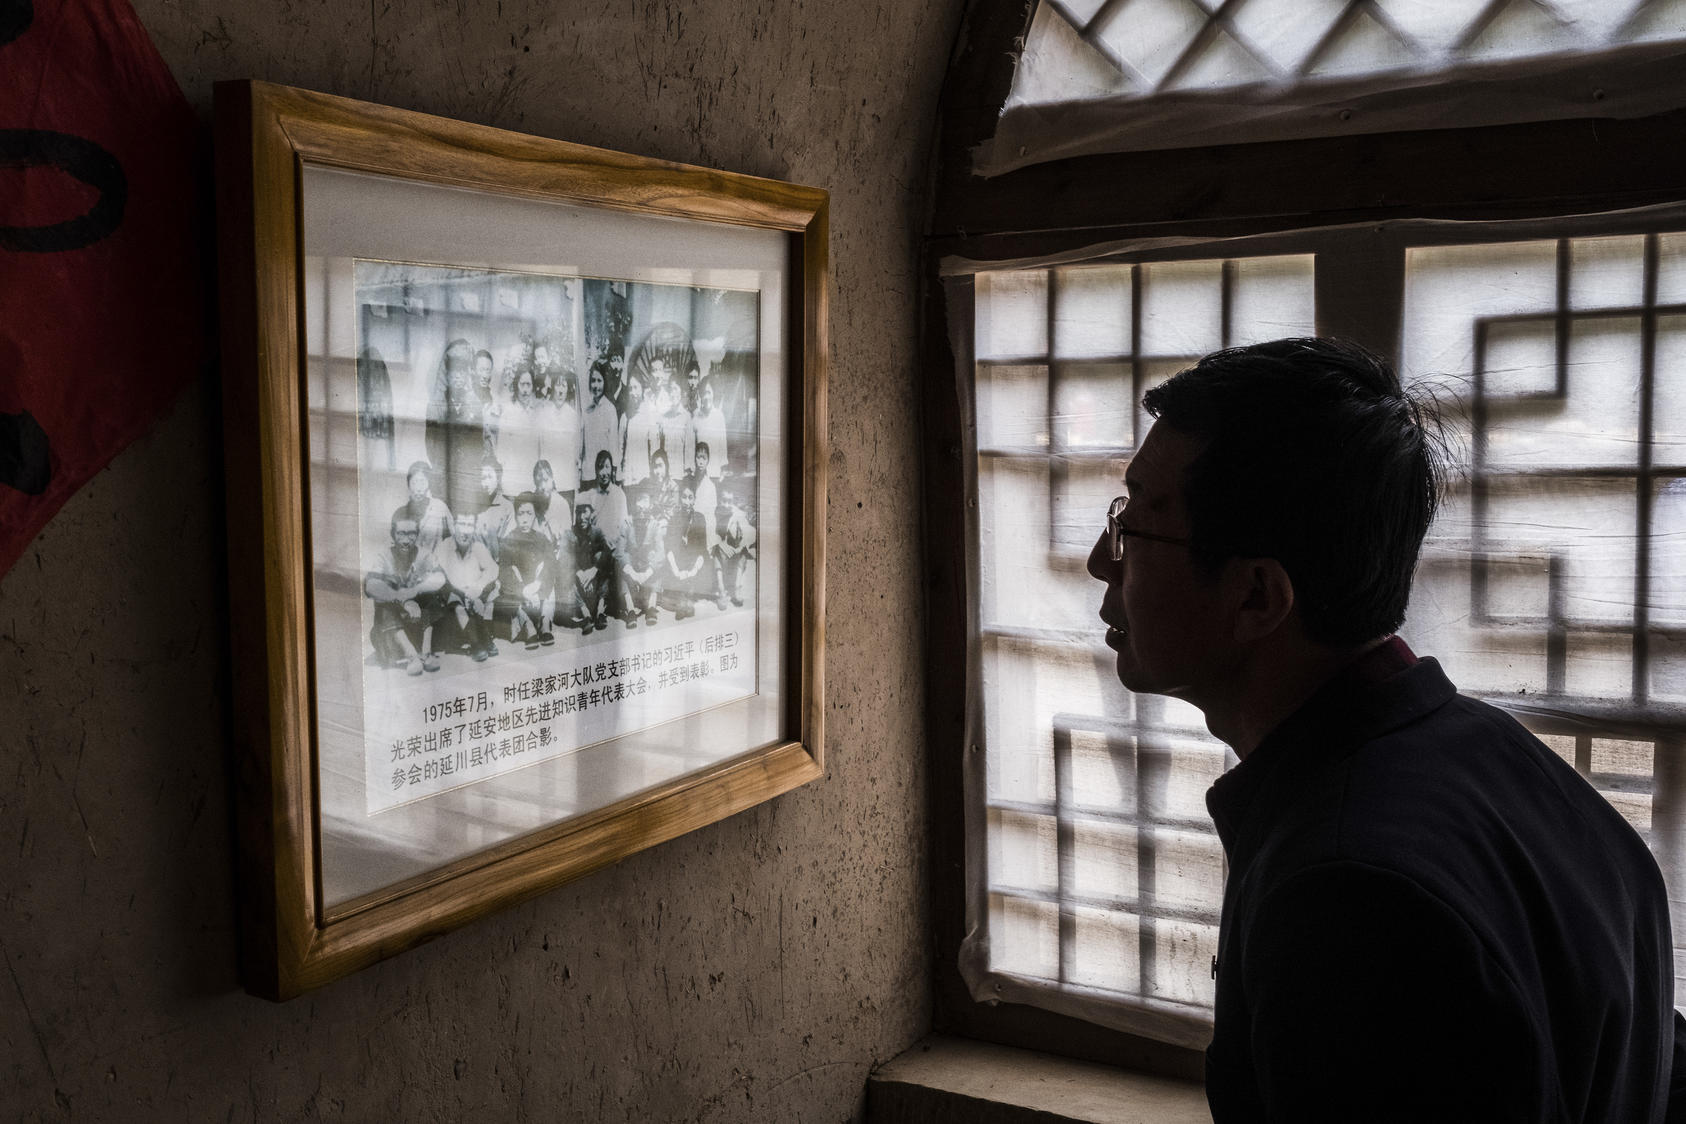 A visitor looks at a photo of a young Xi Jinping with party members, in Liangjiahe, China. The village, where Xi spent a formative period of his youth during the Cultural Revolution, has been converted into a tourist attraction. Photo NYT/Bryan Denton